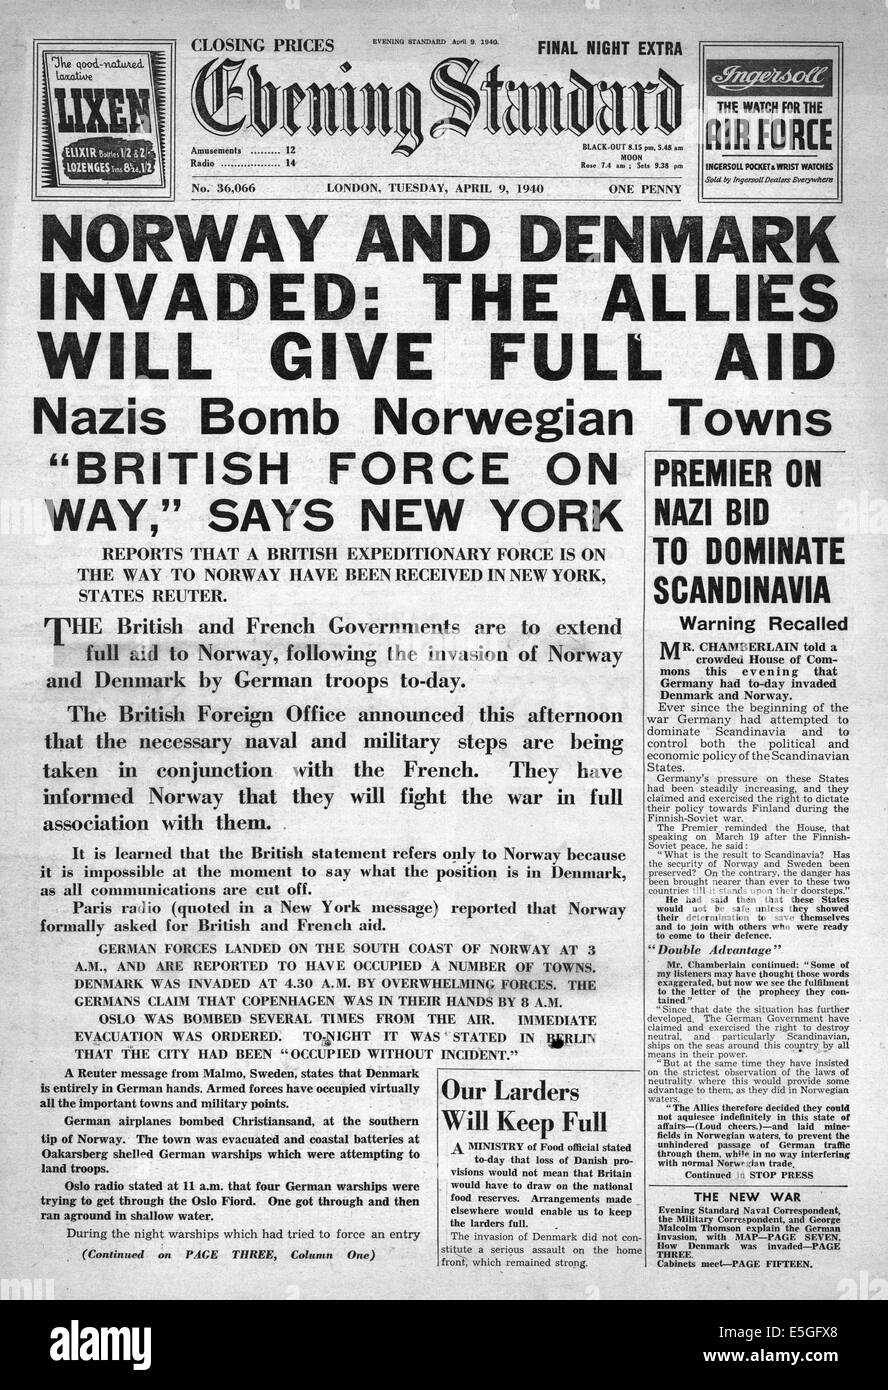 http://c8.alamy.com/comp/E5GFX8/1940-evening-standard-london-front-page-reporting-germany-invades-E5GFX8.jpg